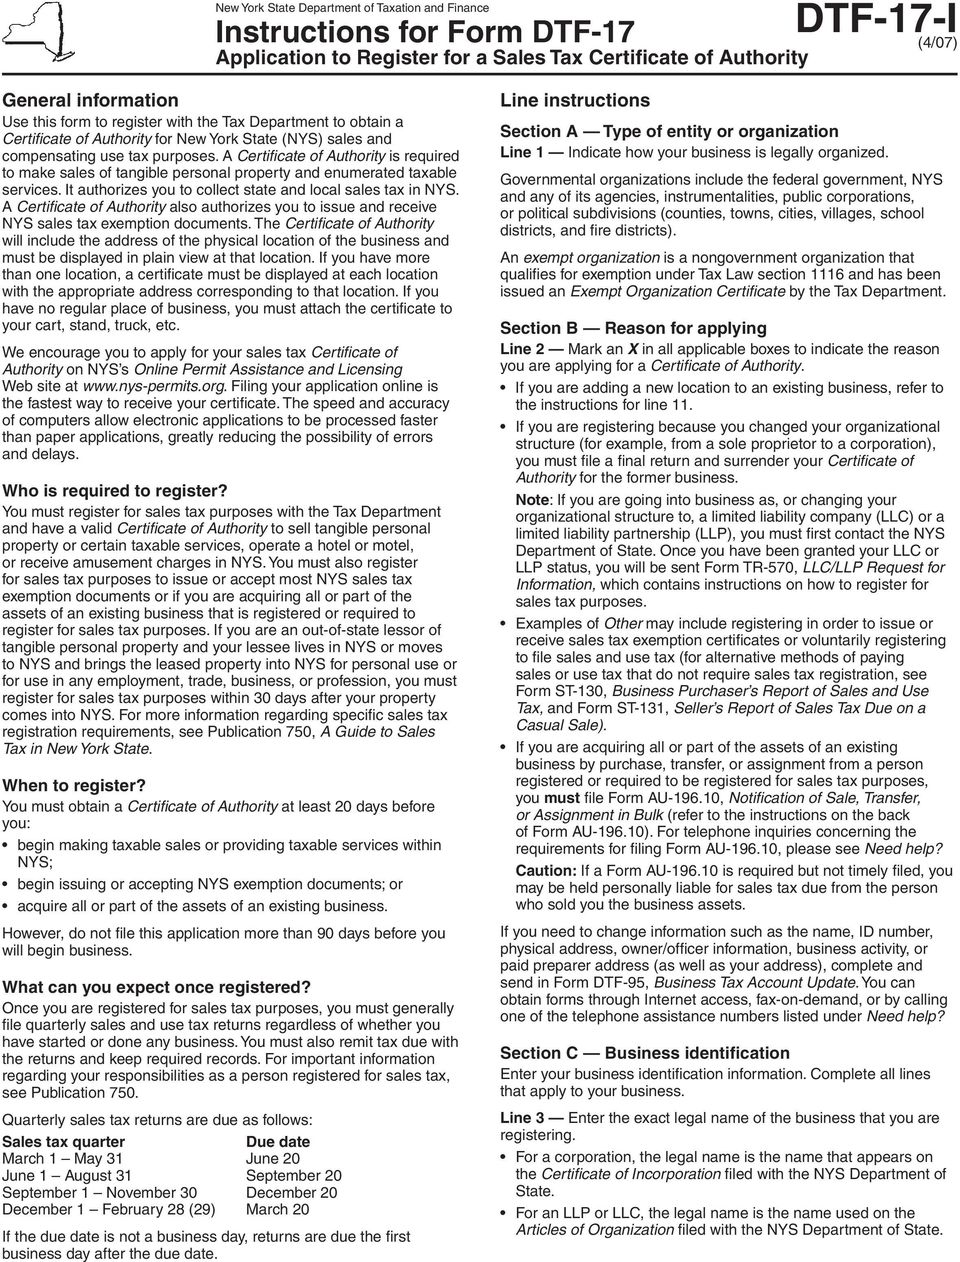 New York State Department Of Taxation And Finance Application To